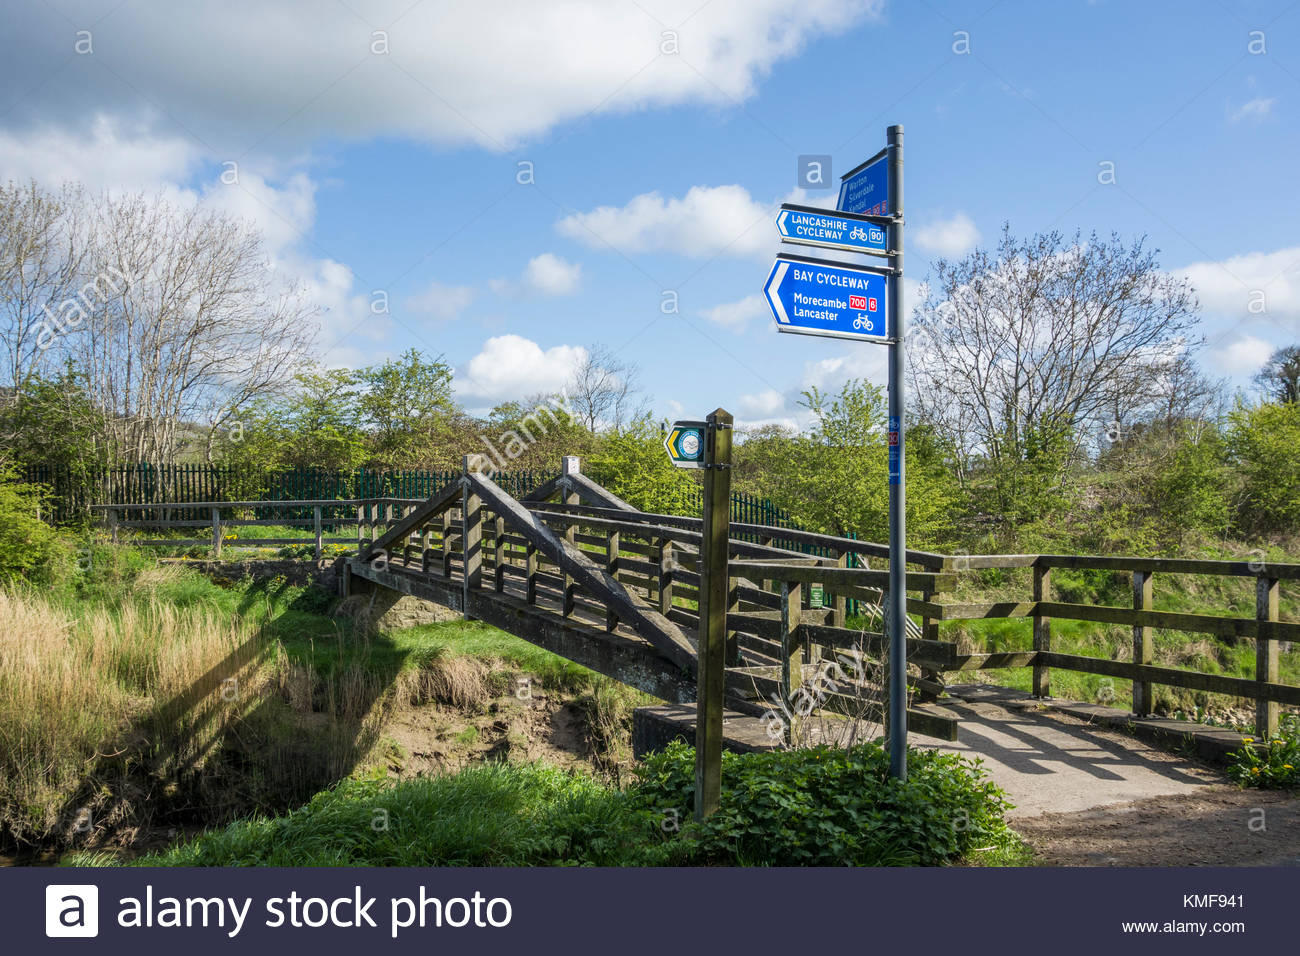 Bay Cycleway and Lancashire Cycleway sign by a bridge near Carnforth in Lancashire, on NCN routes 6, 90 and 700 - Stock Image